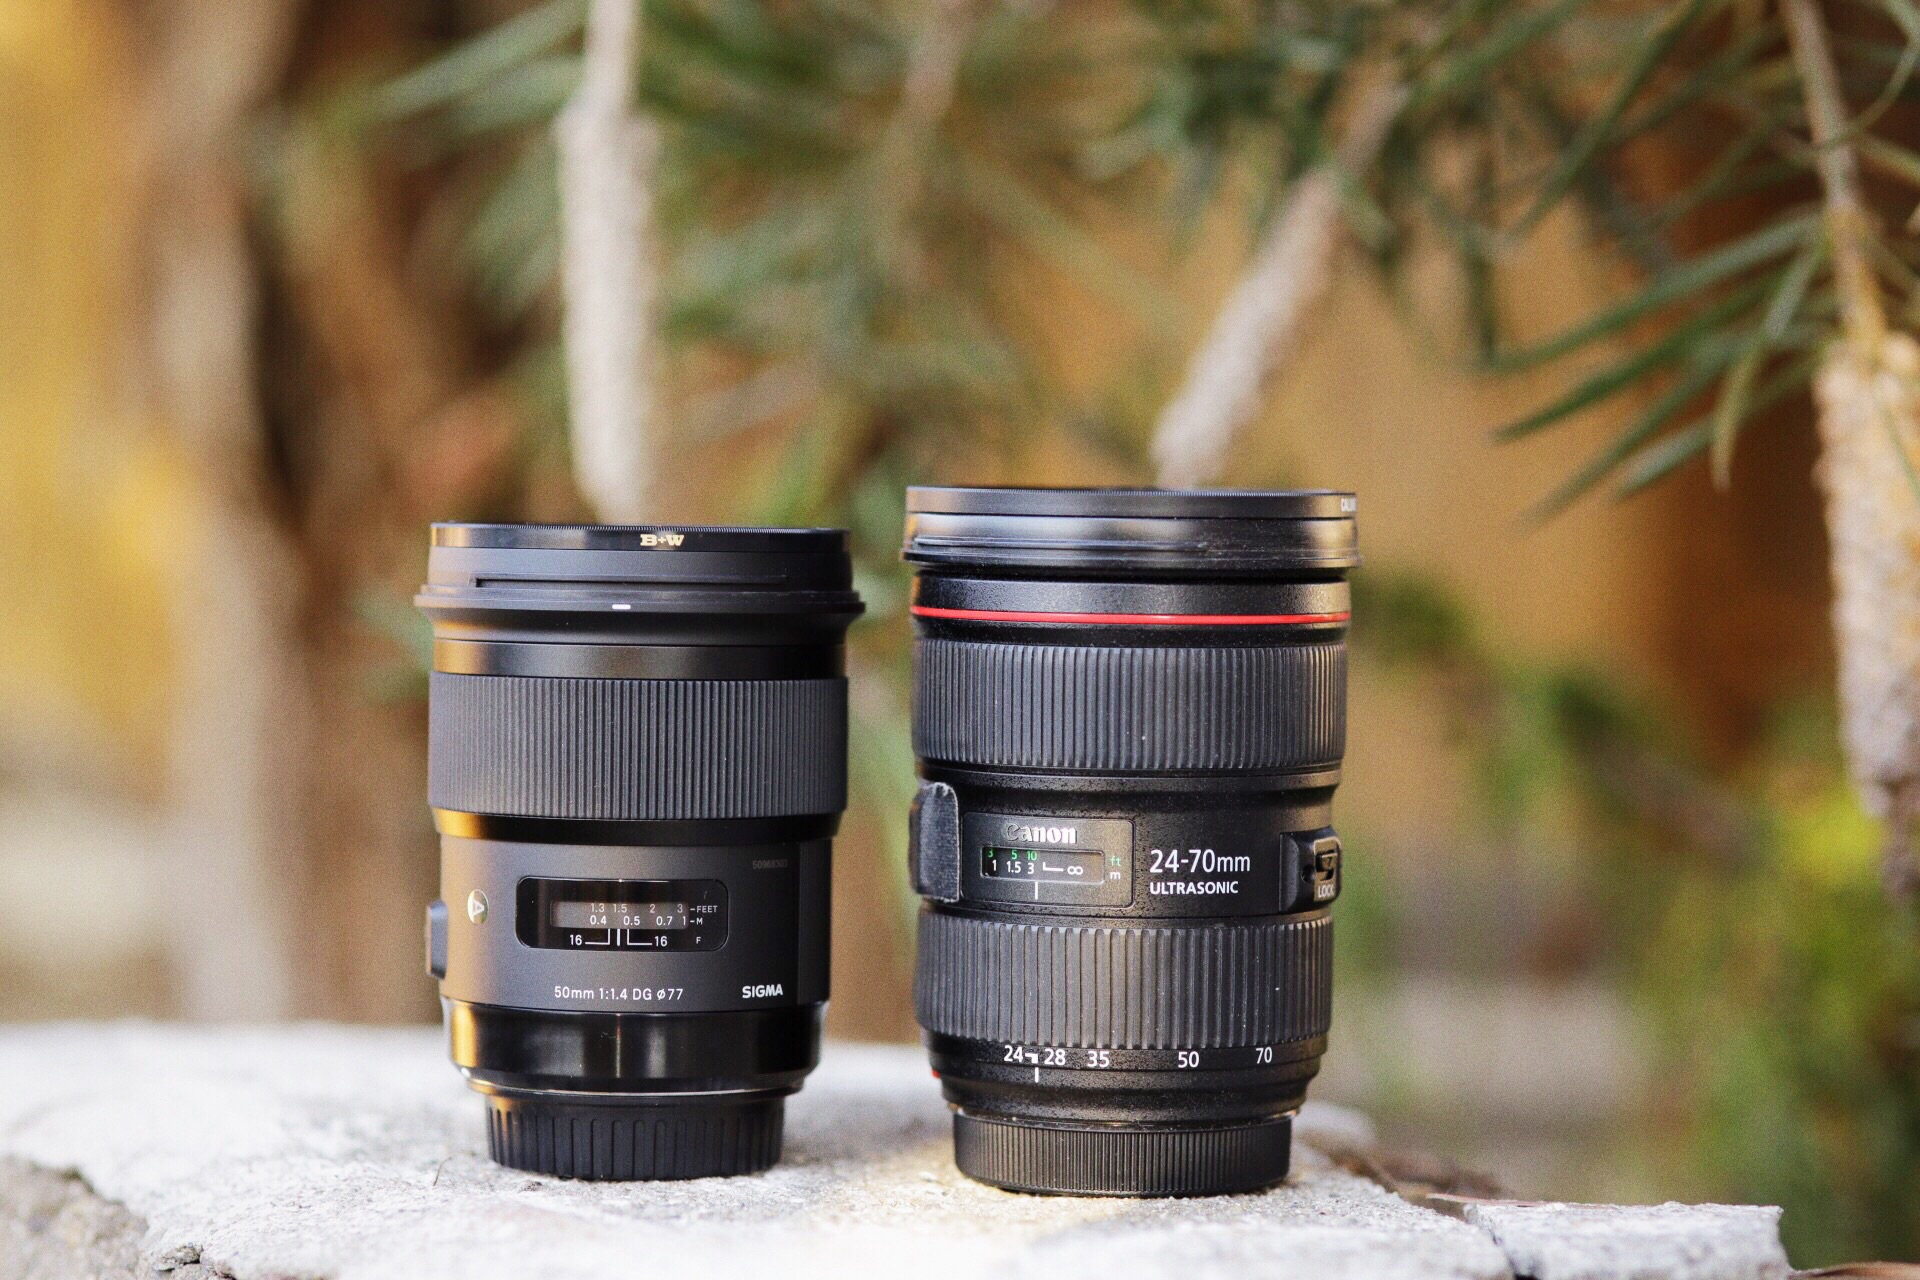 Sigma 50mm 1.4 Art next to the current 24-70mm f2.8 L as you can see it is quite close in size to the zoom.